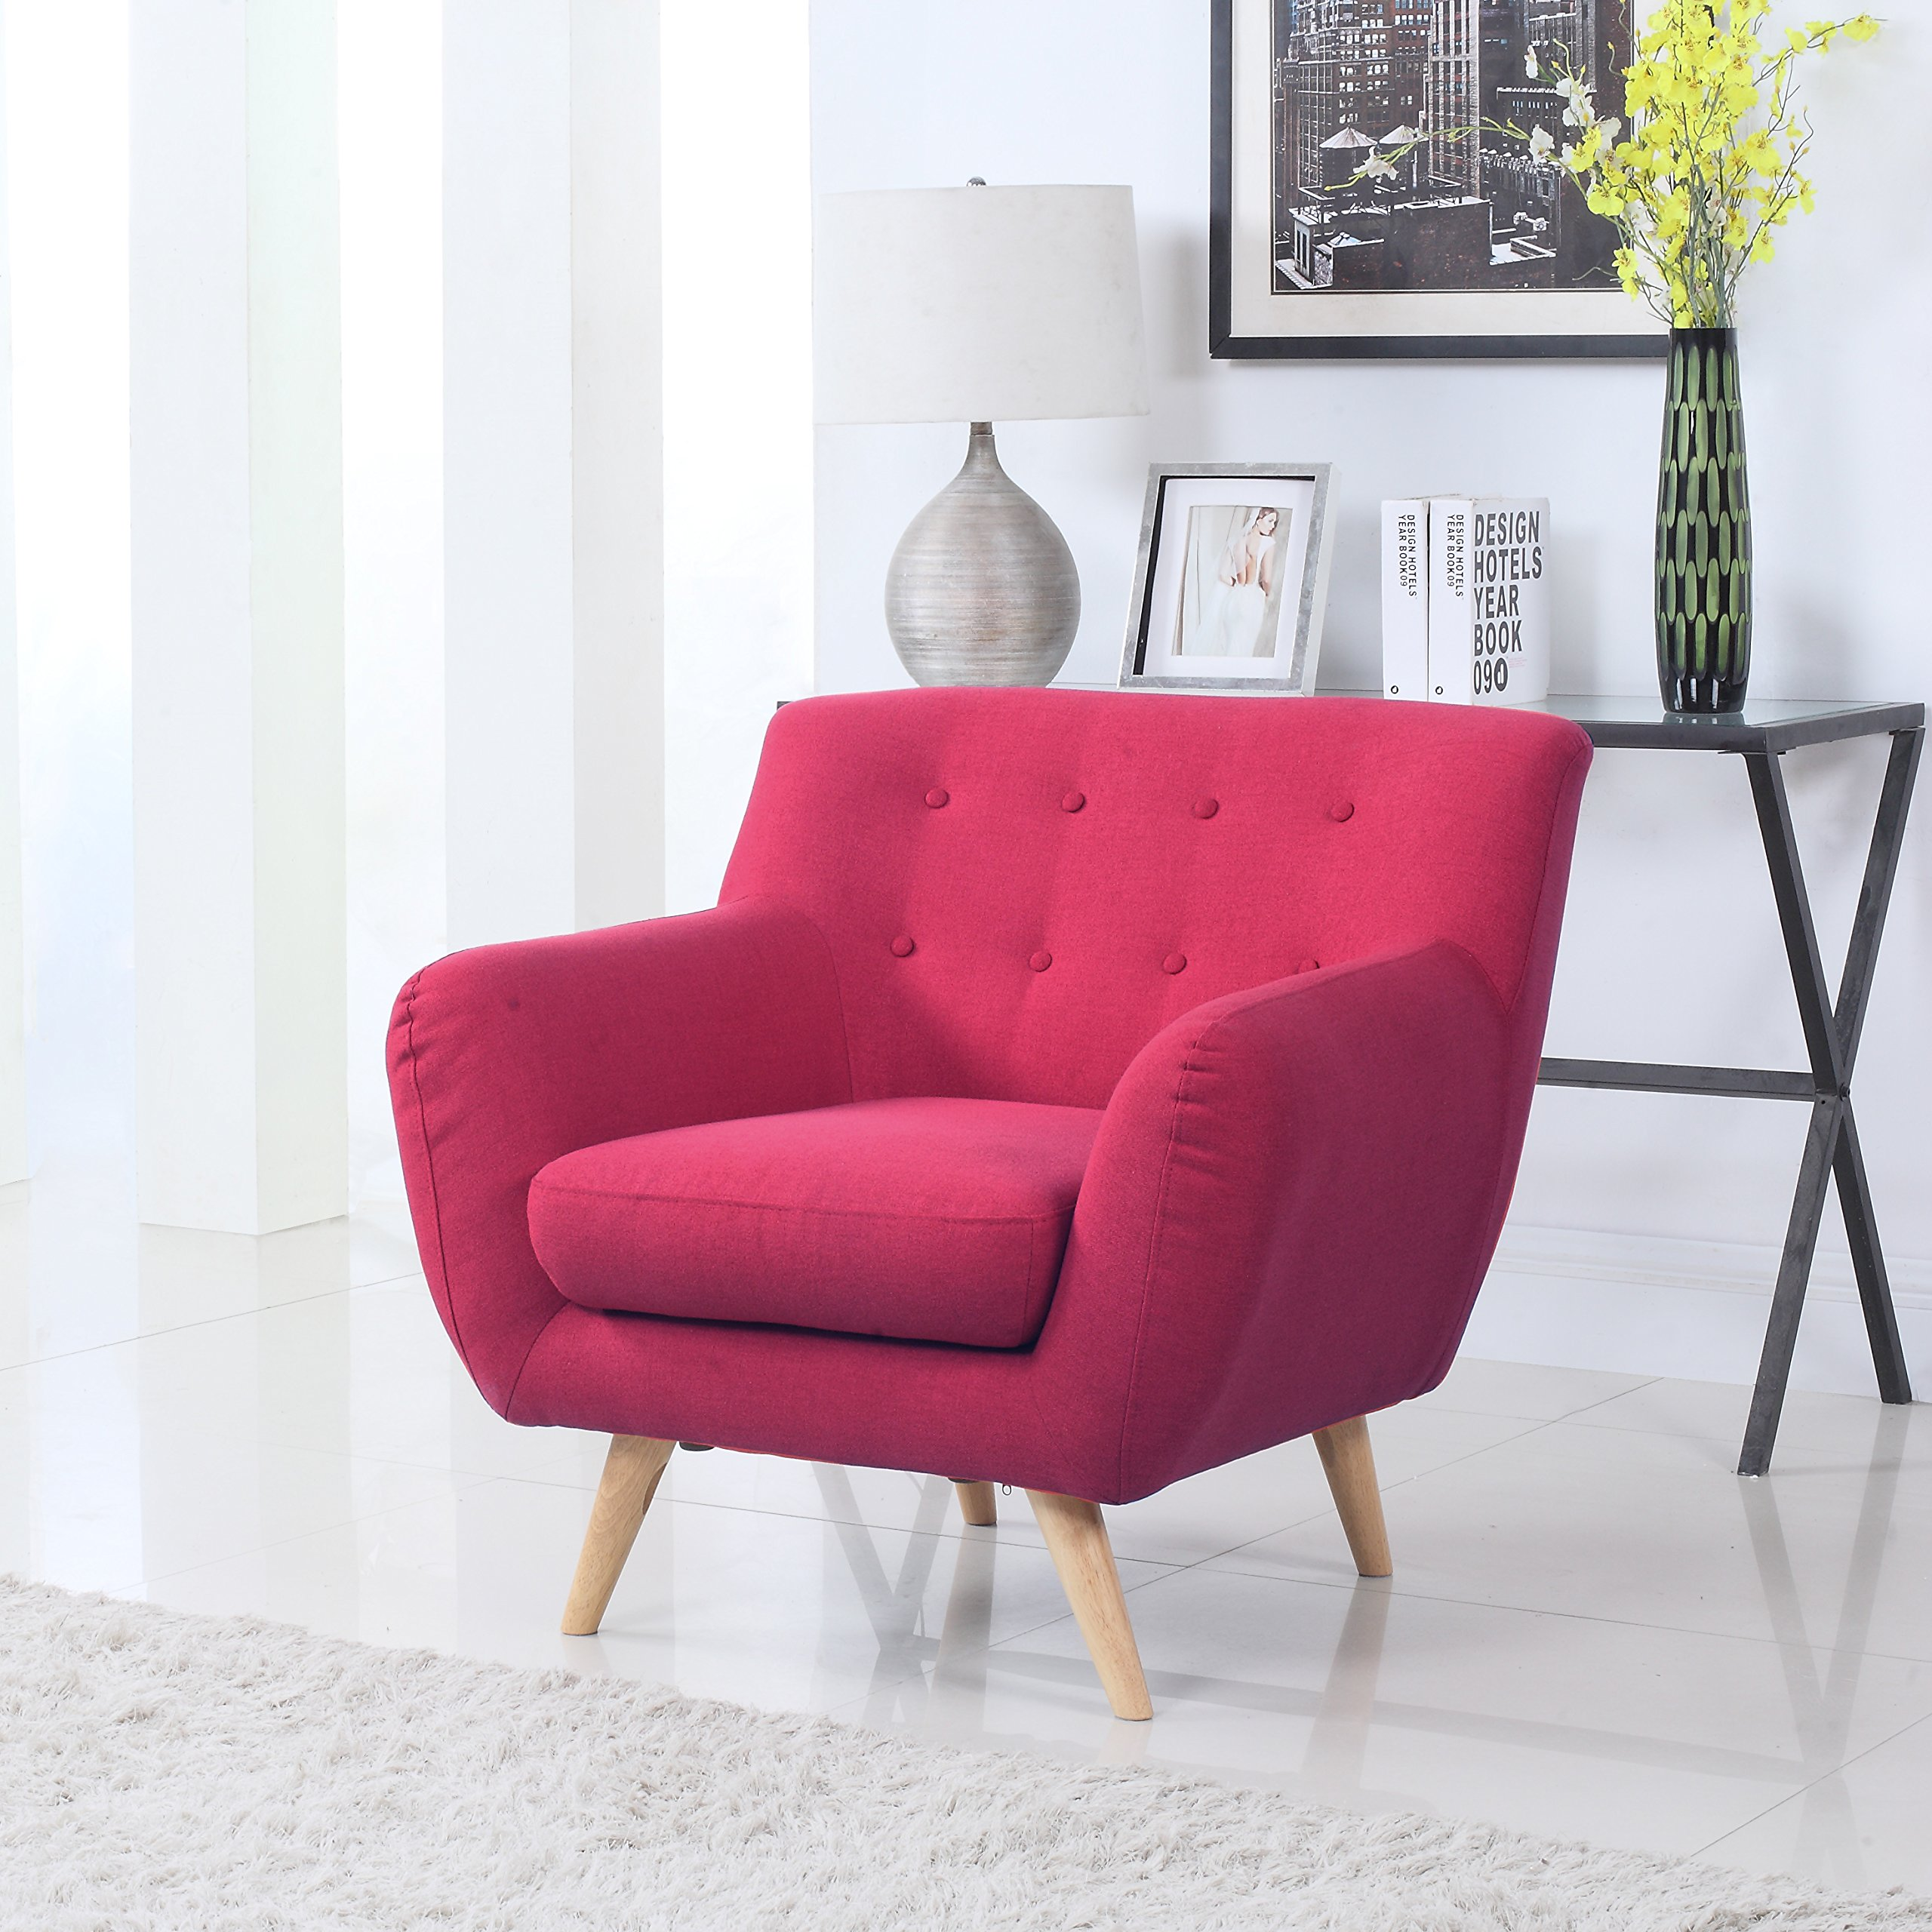 Divano Roma Furniture Modern Mid Century Style Sofa, Red, 1 Seater by Divano Roma Furniture